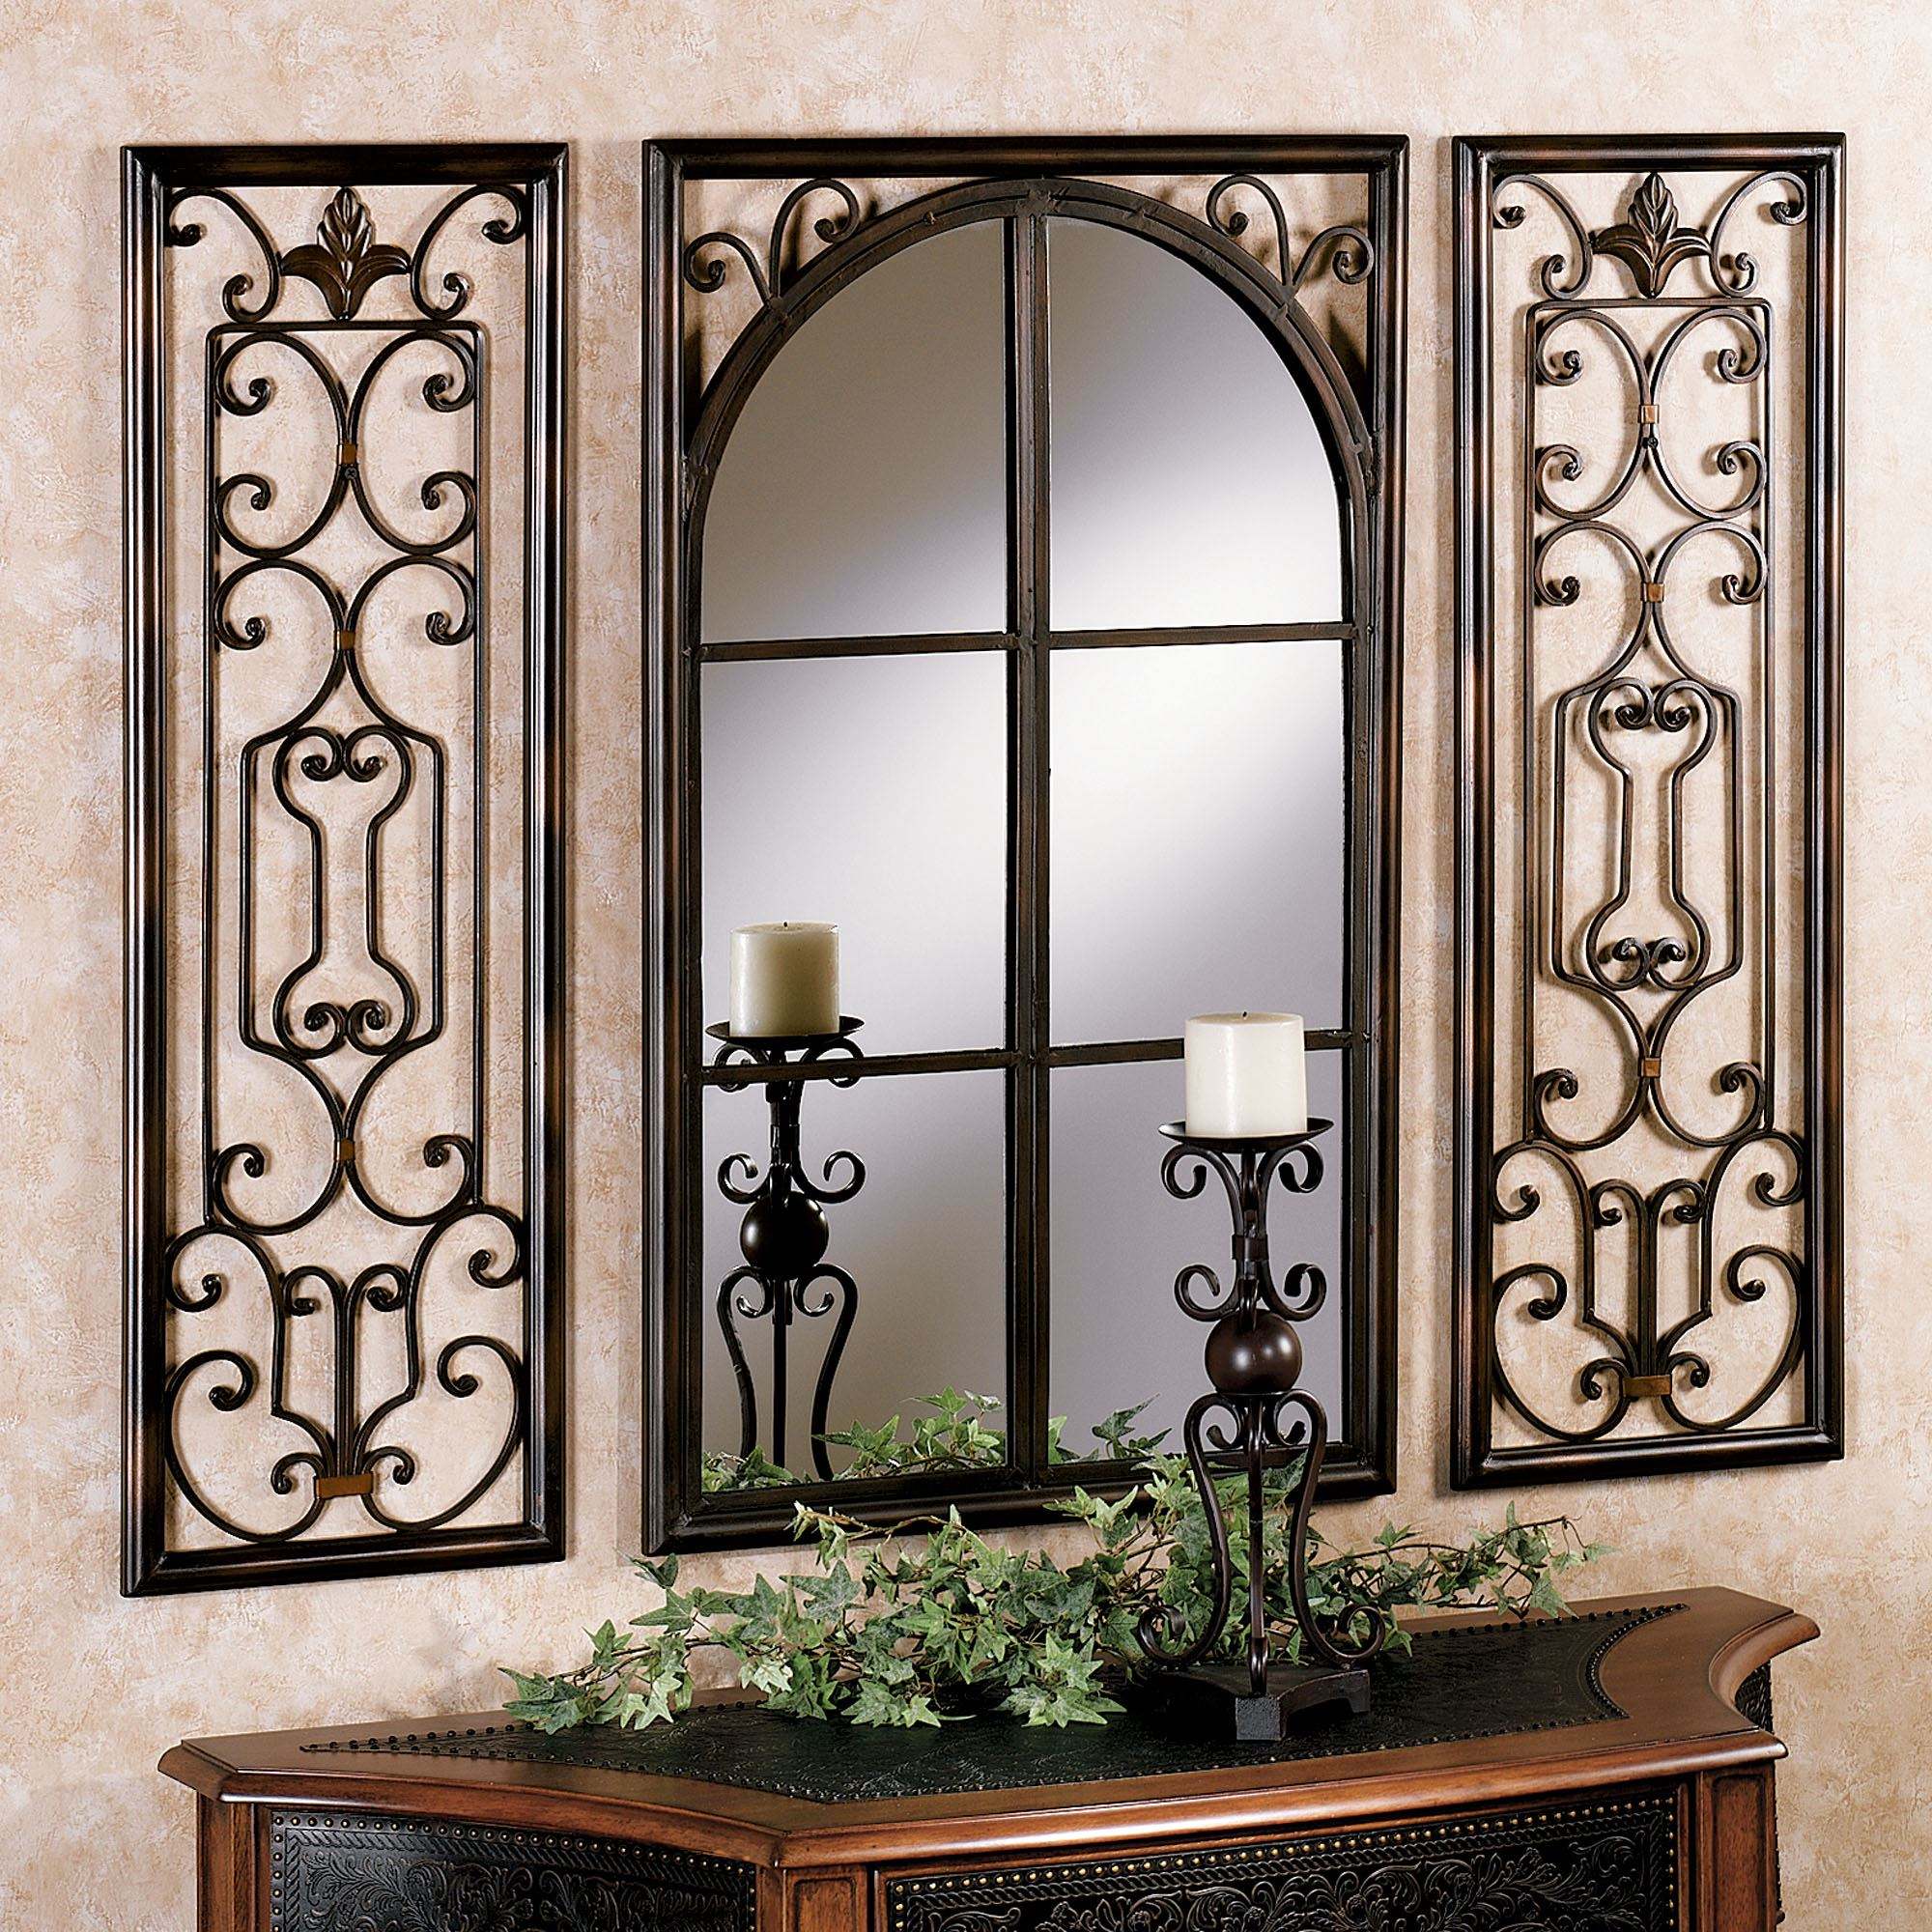 Provence bronze finish wall mirror set for Mirror decor